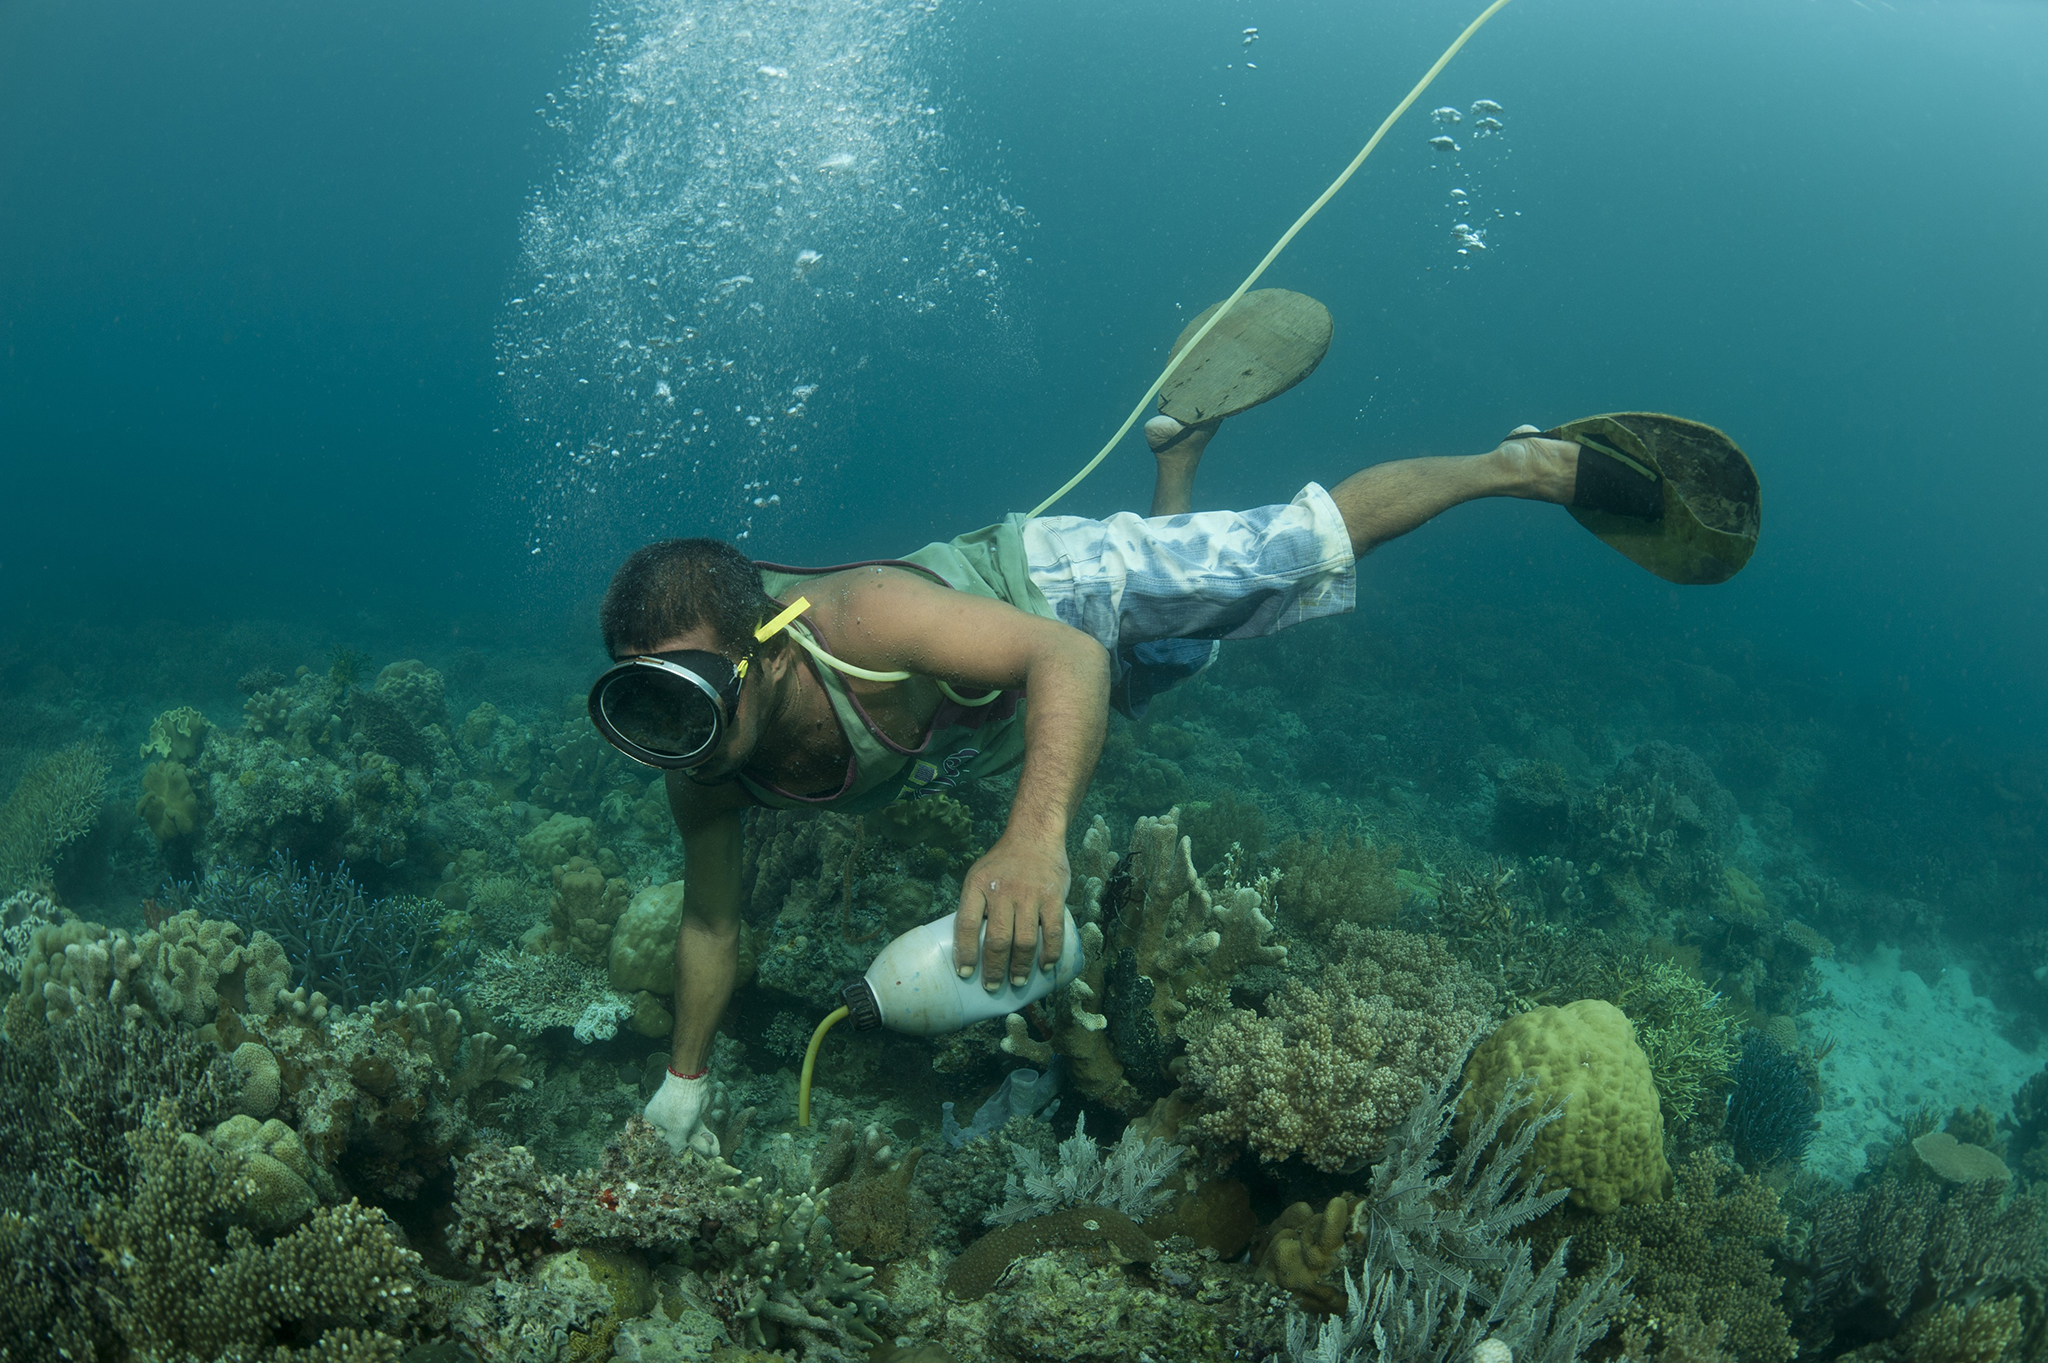 Destructive Fishing is Widespread in Southeast Asia - News ...